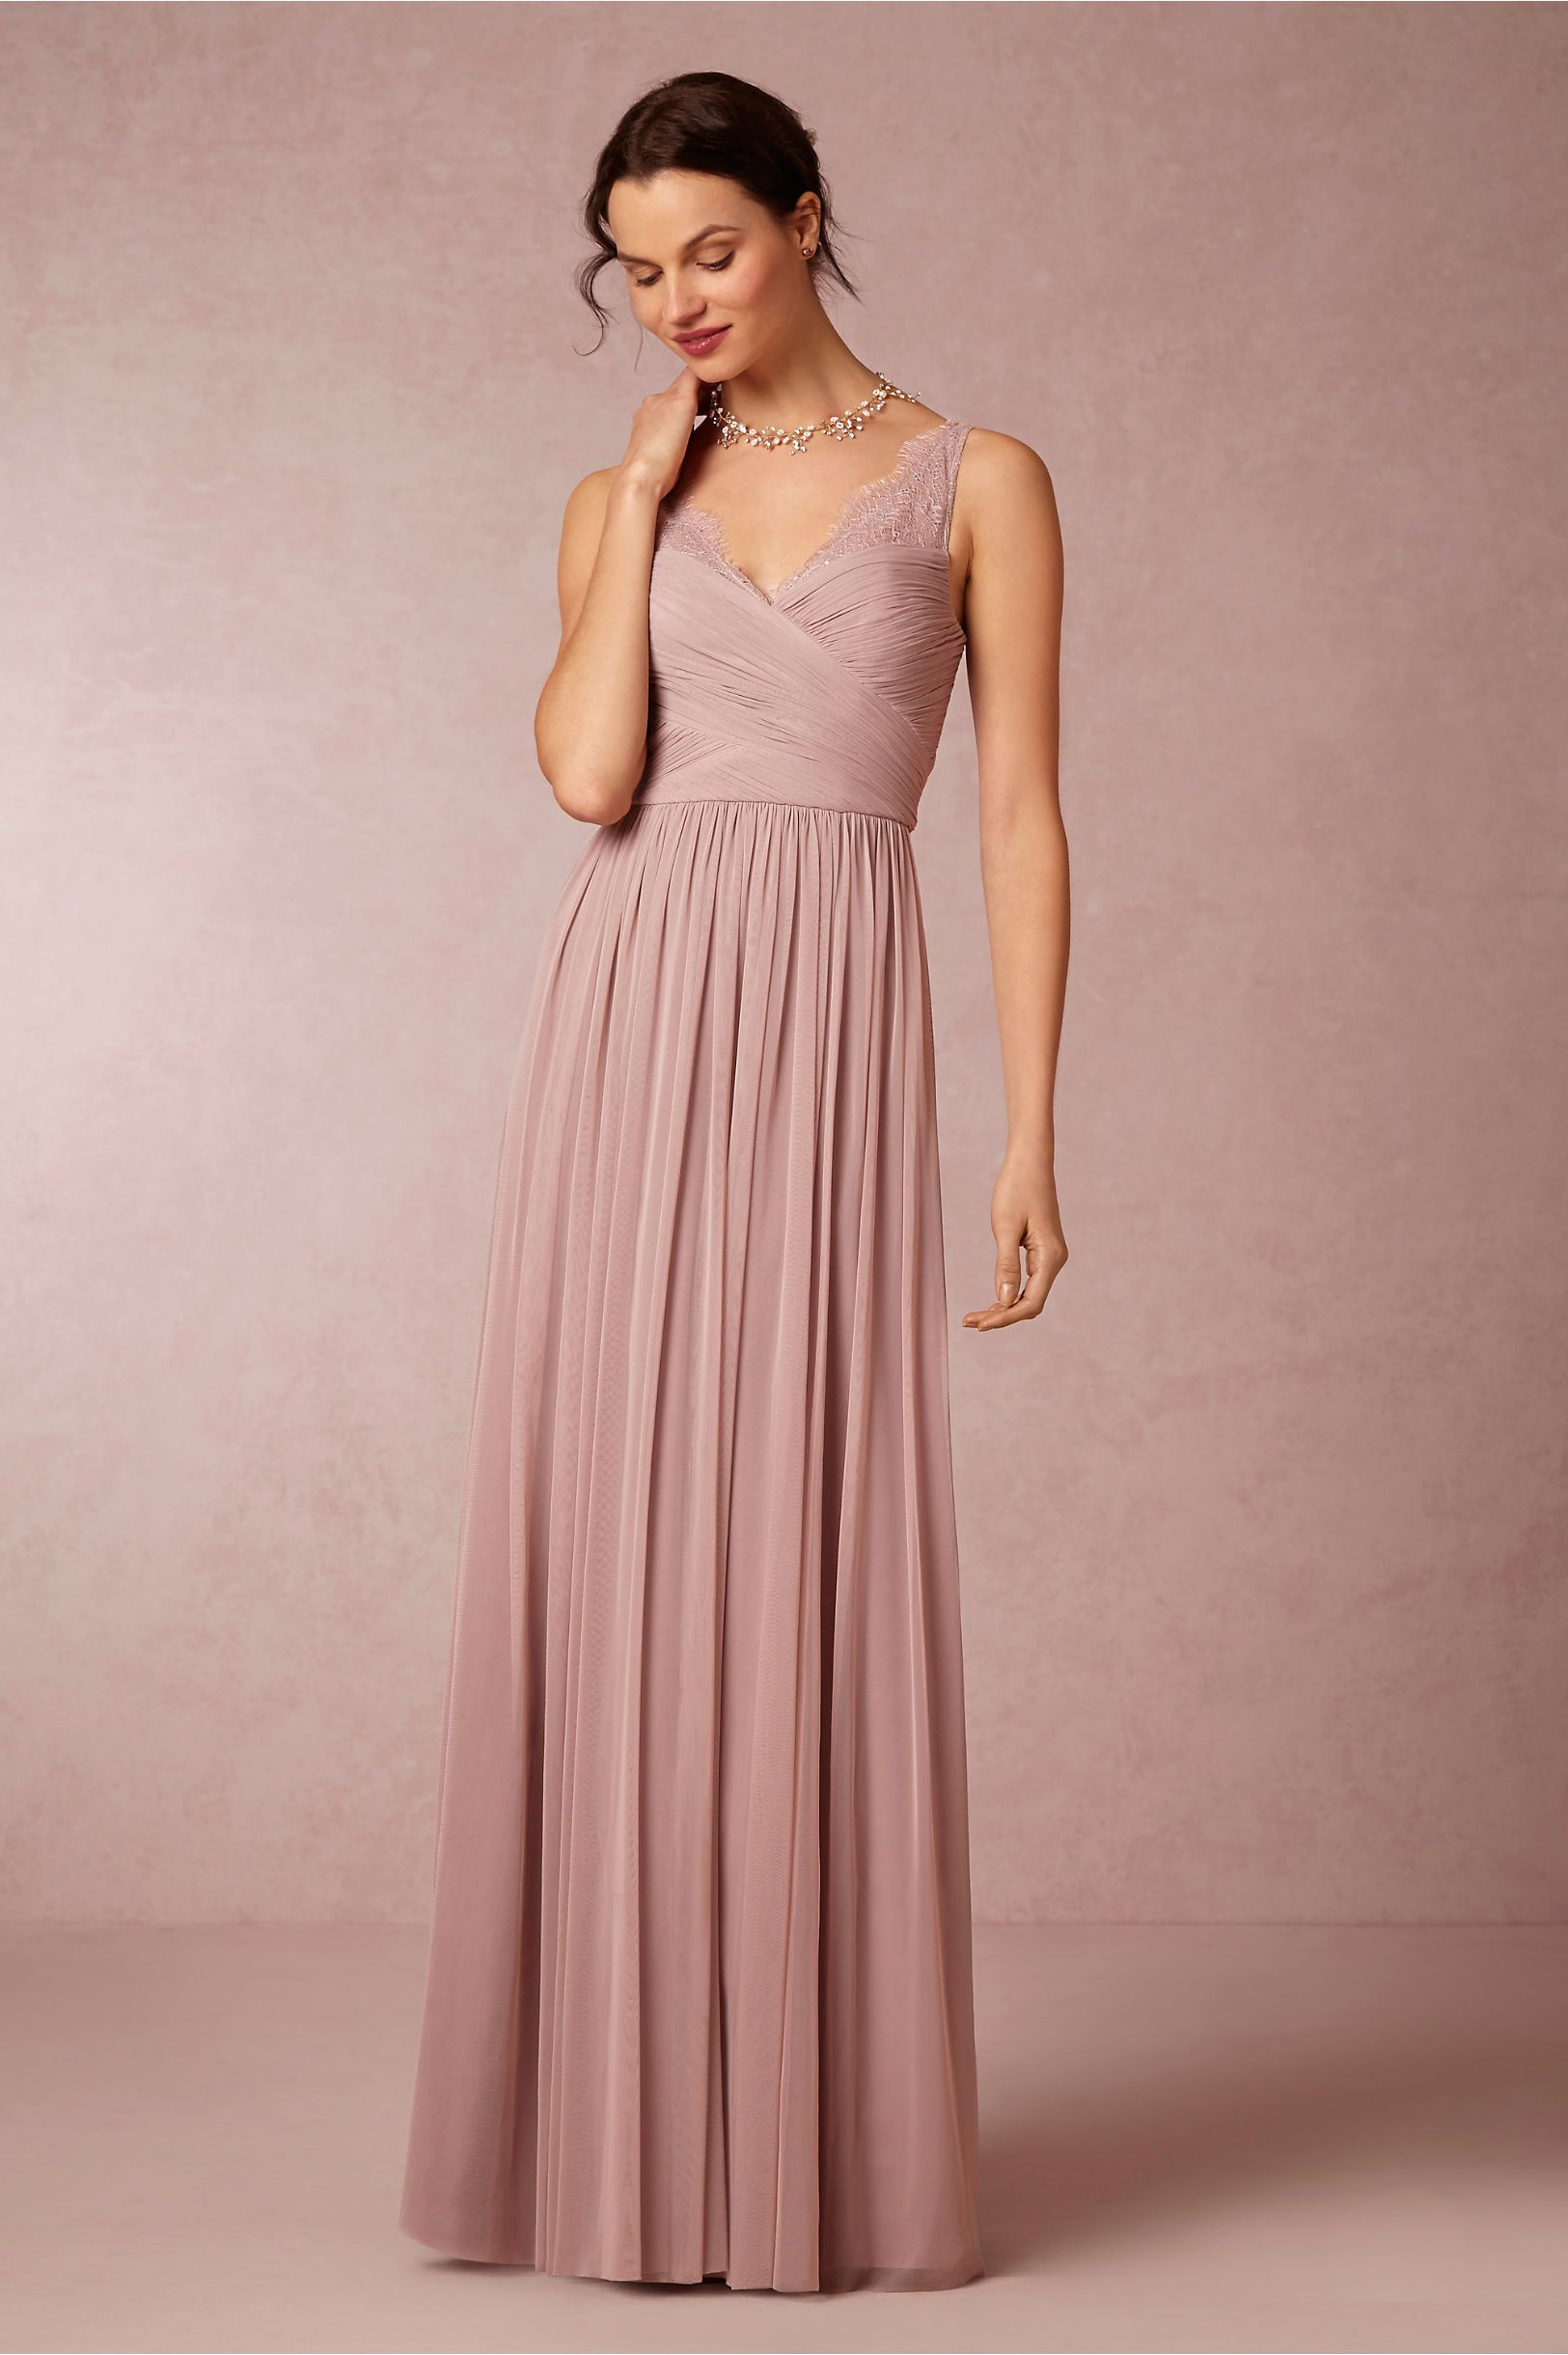 Fleur Dress from @BHLDN | Wedding season | Pinterest | Lavender ...